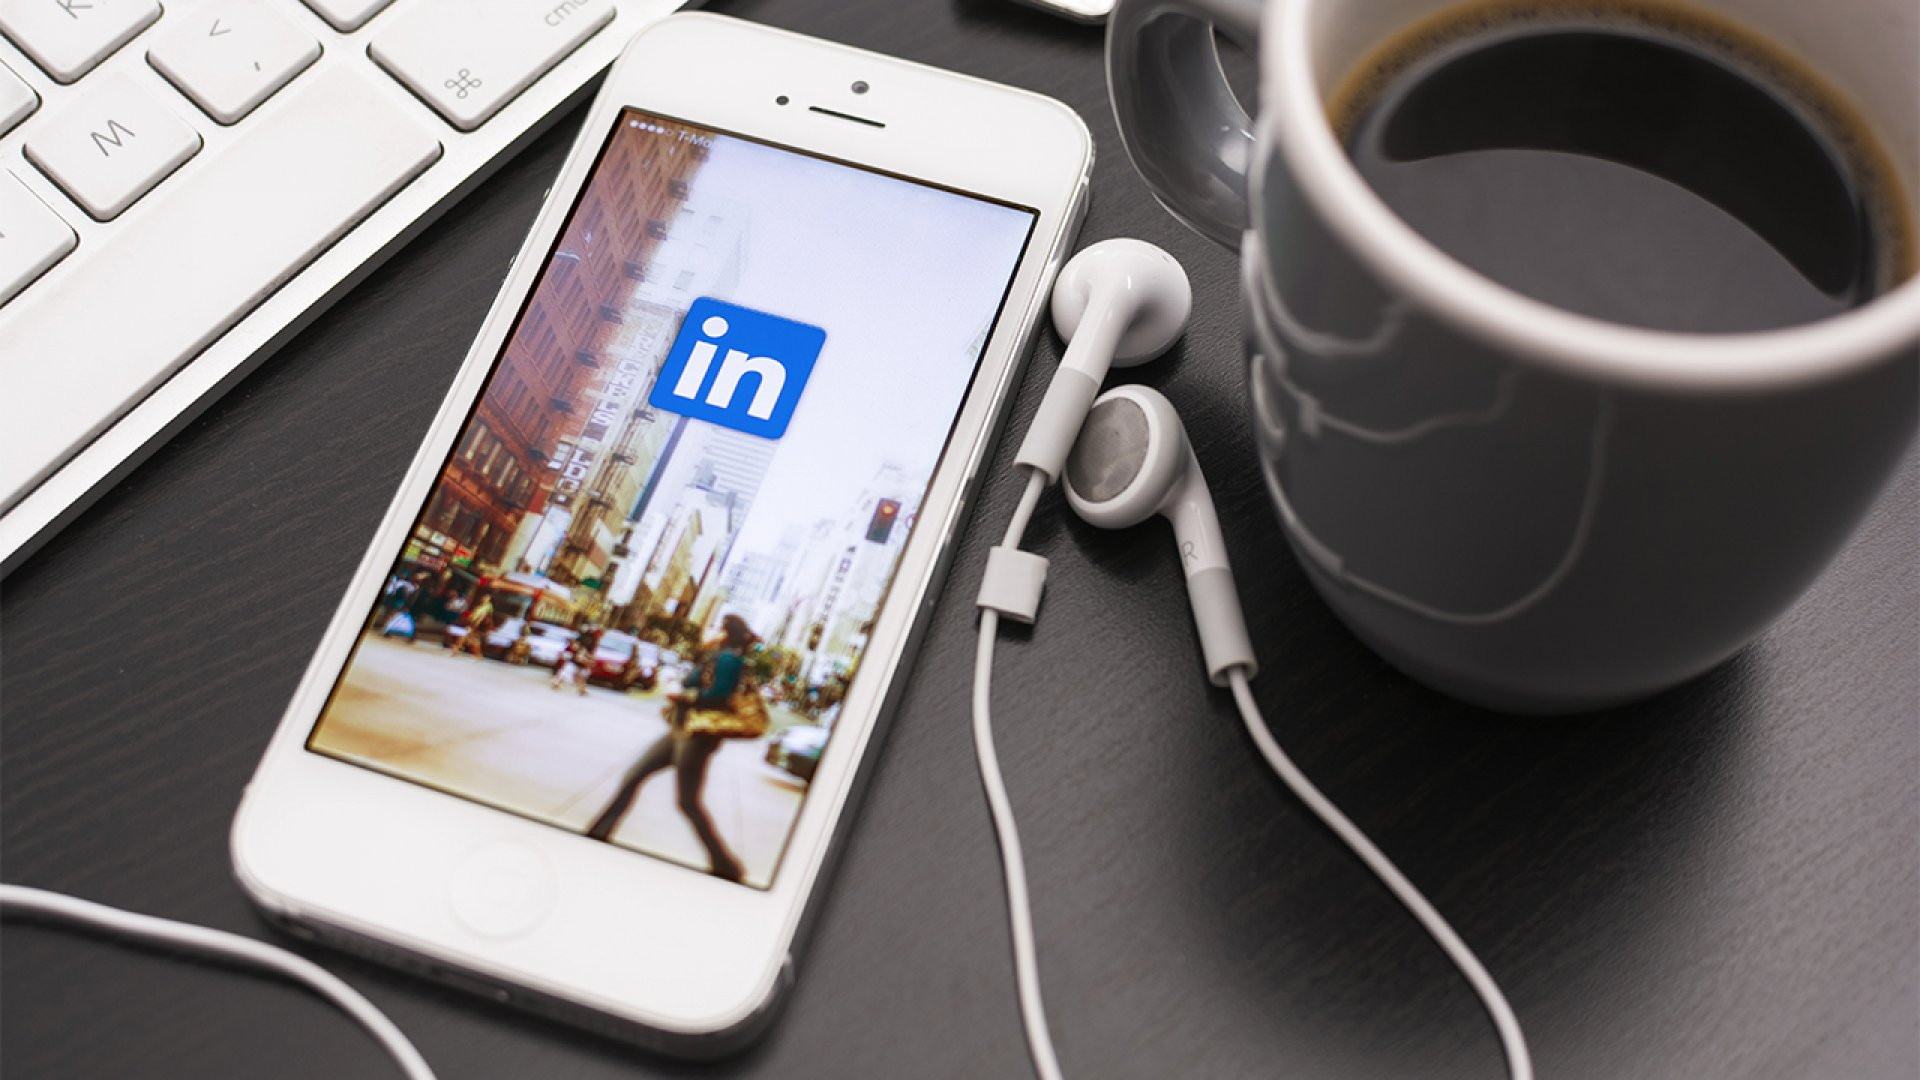 How to Write About Yourself on LinkedIn Without Boasting